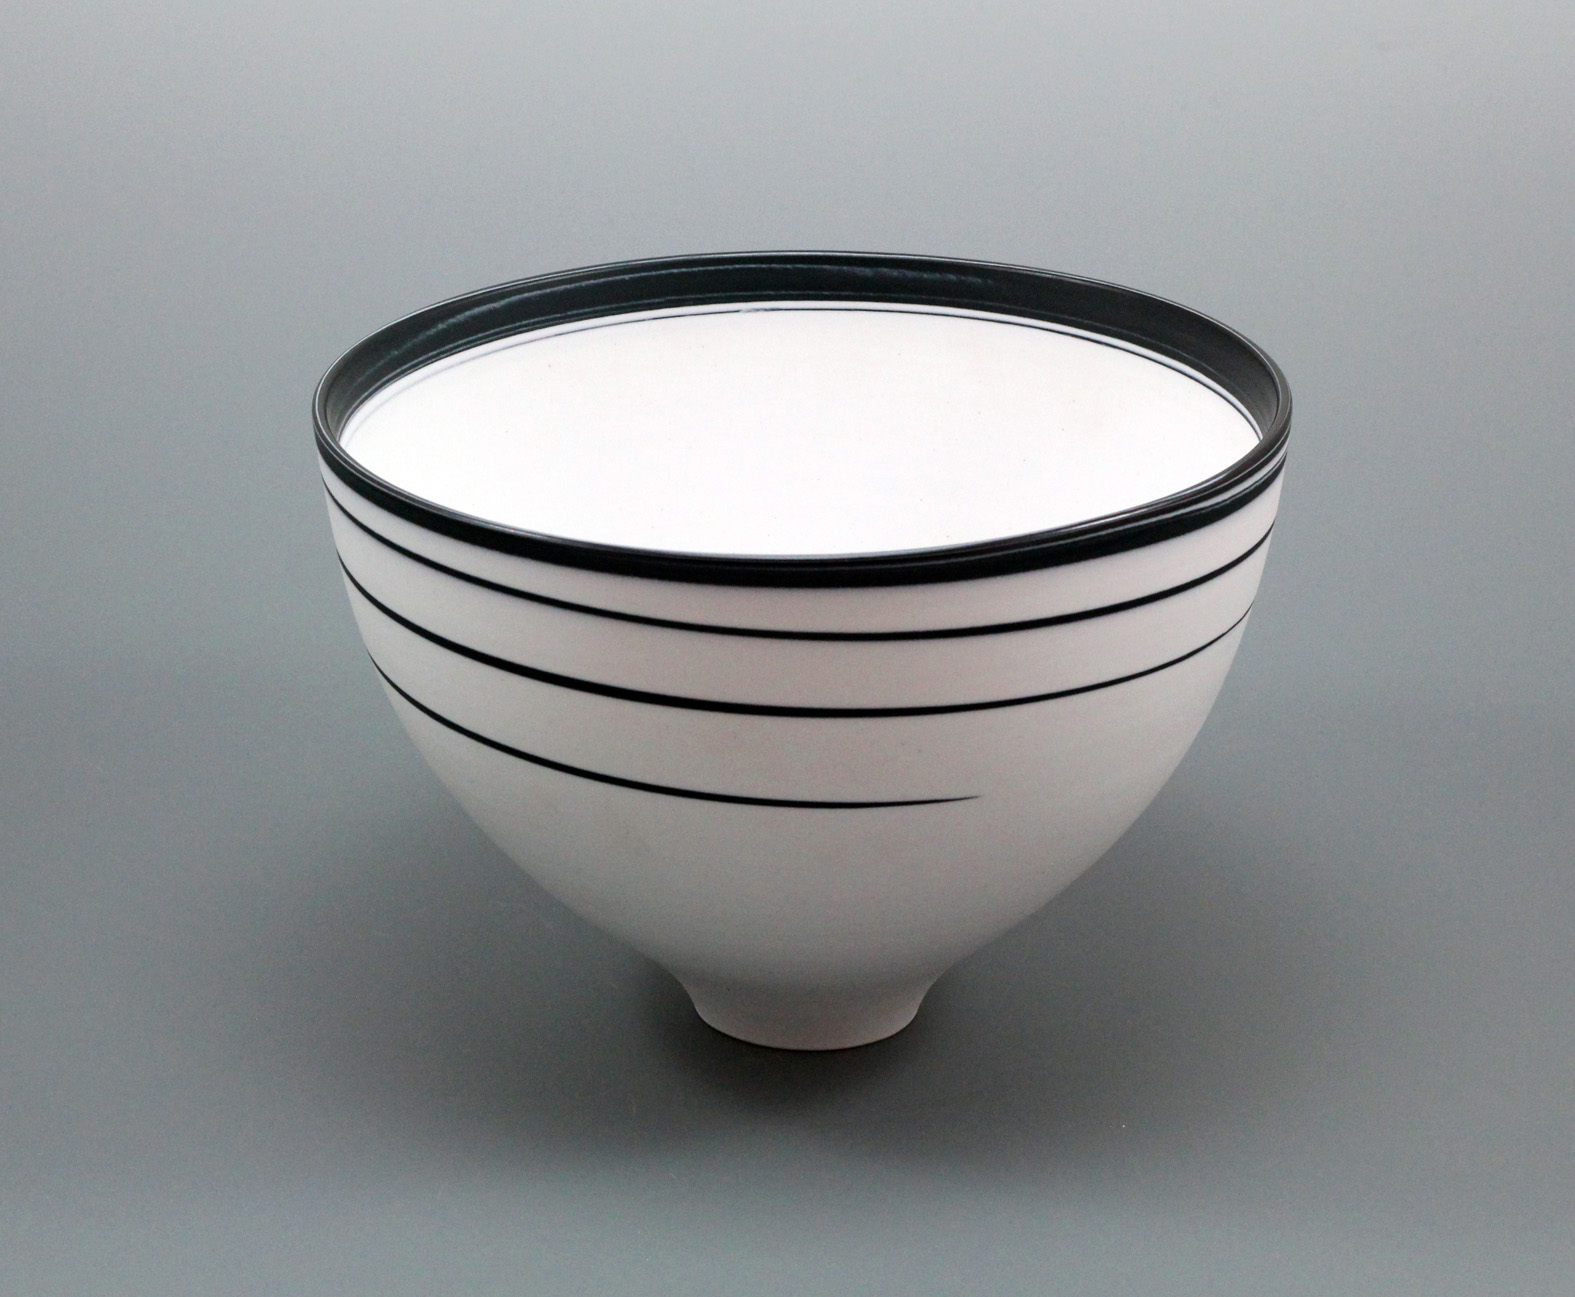 porcelain black and white bowl